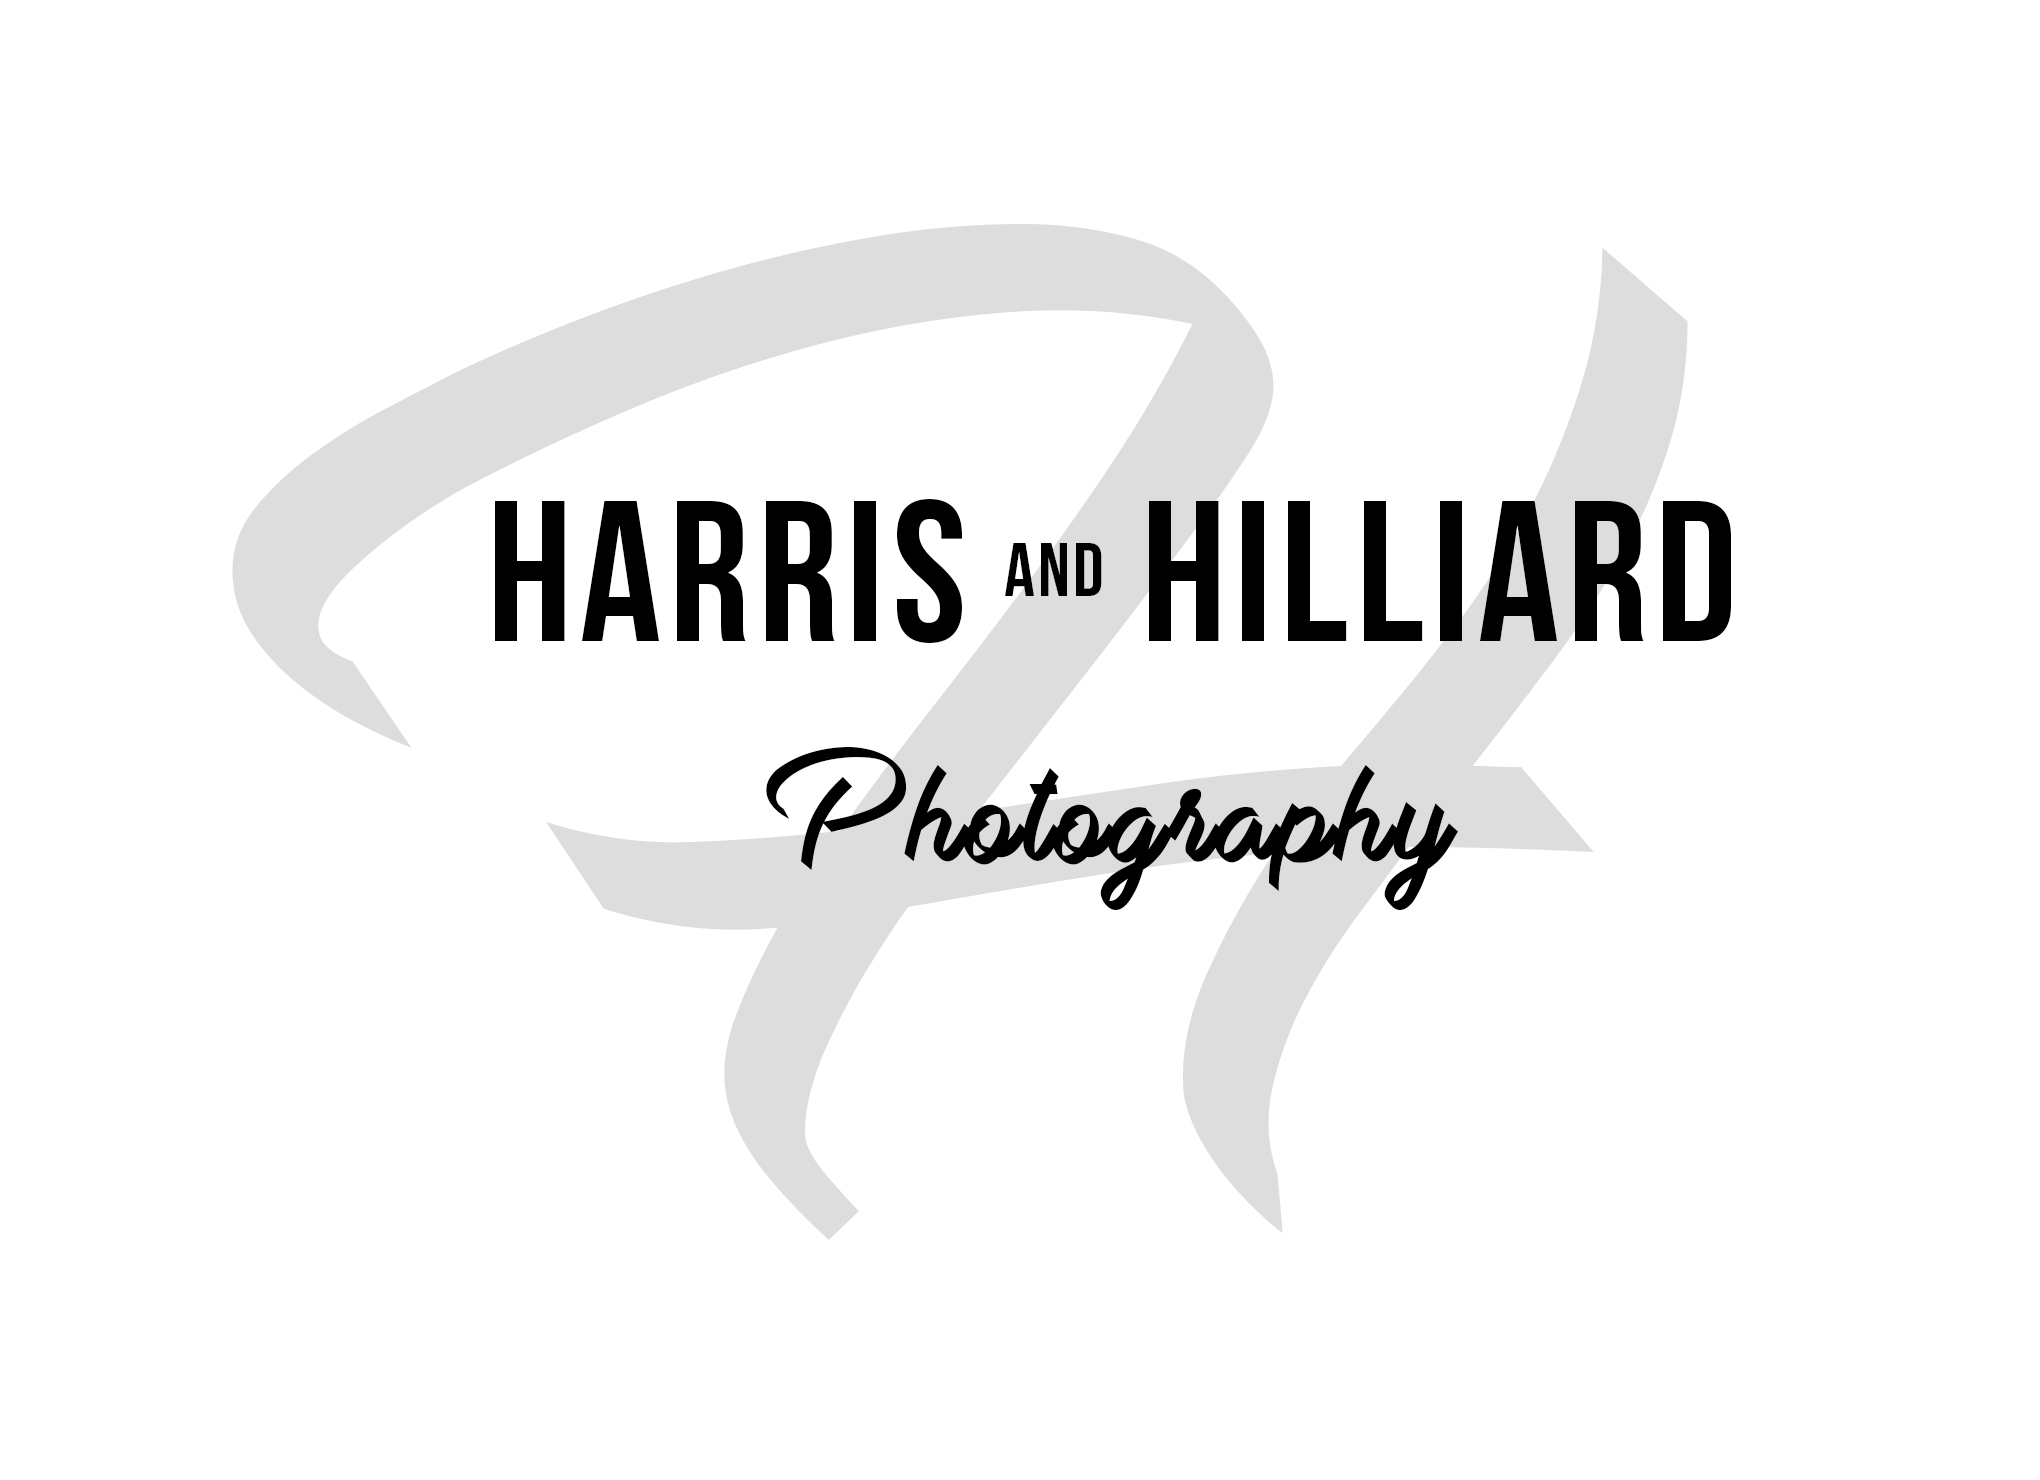 Harris and Hilliard Photography